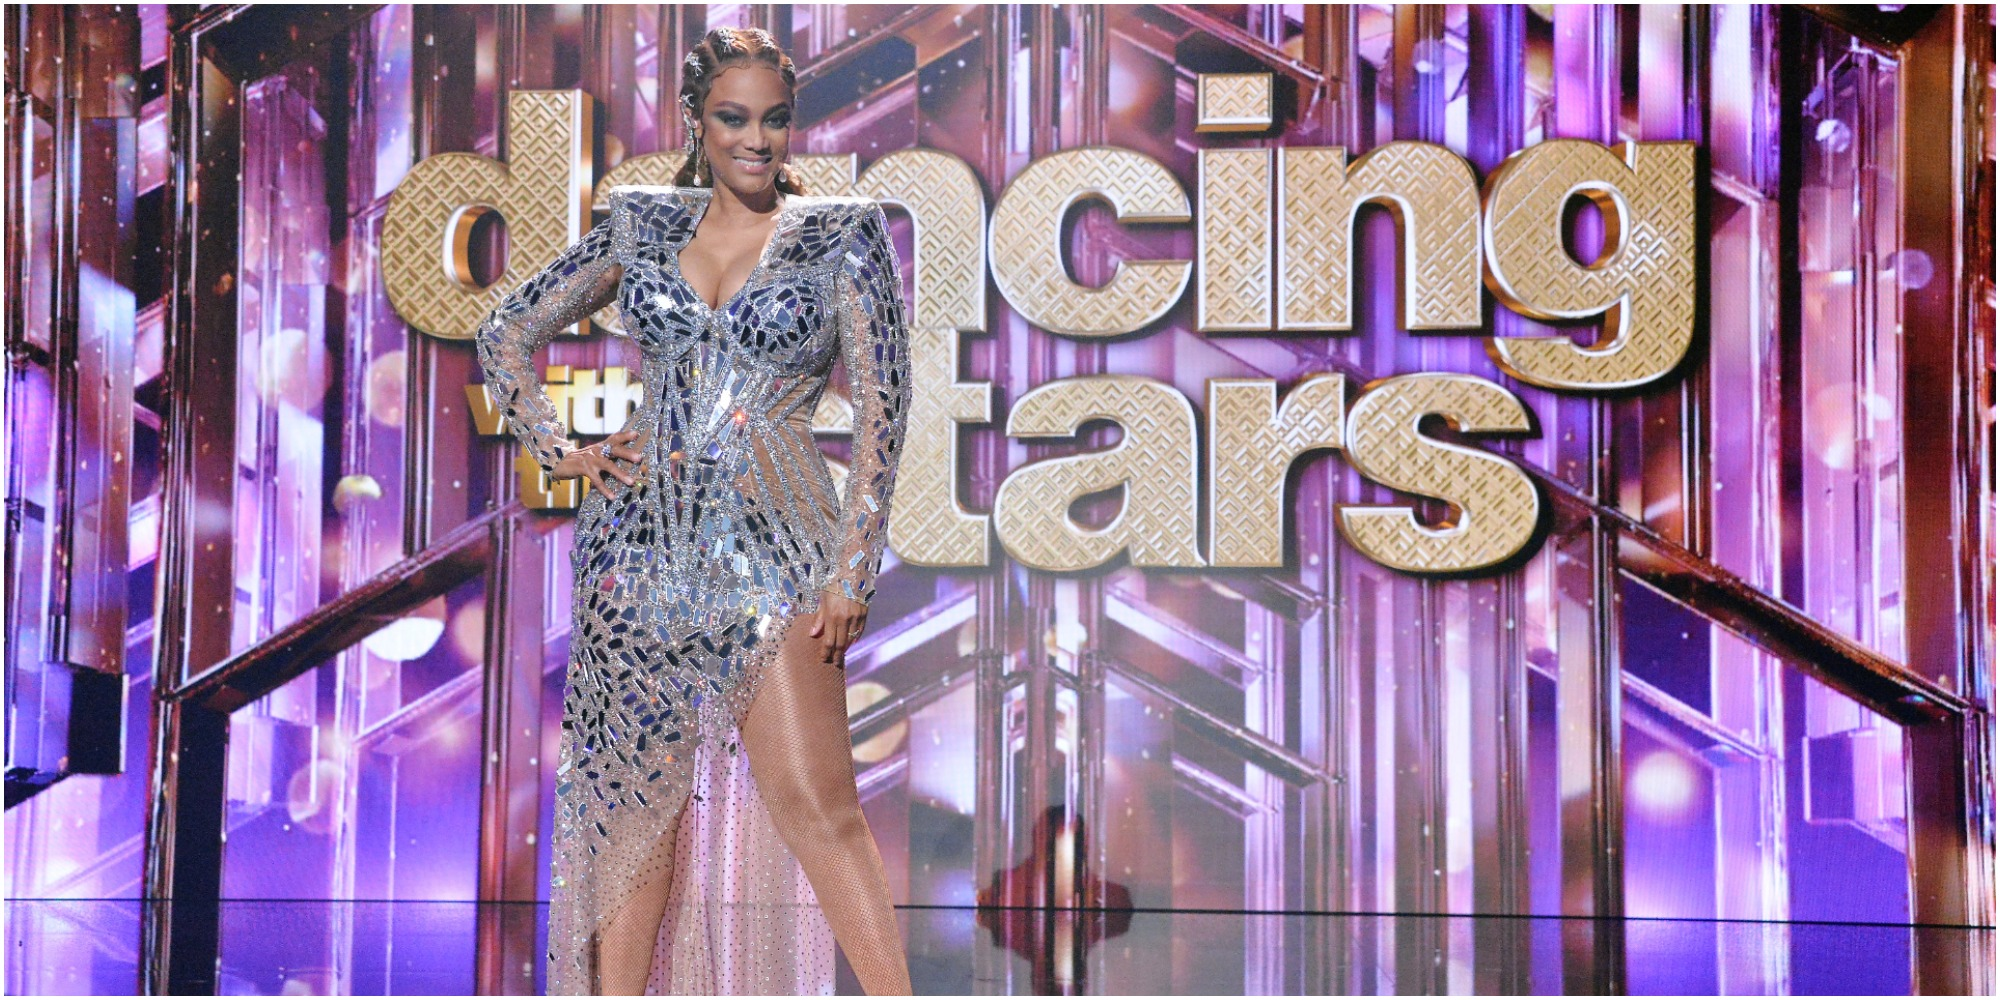 """Tyra Banks plans an """"electrifying"""" entrance on """"Dancing With the Stars."""""""